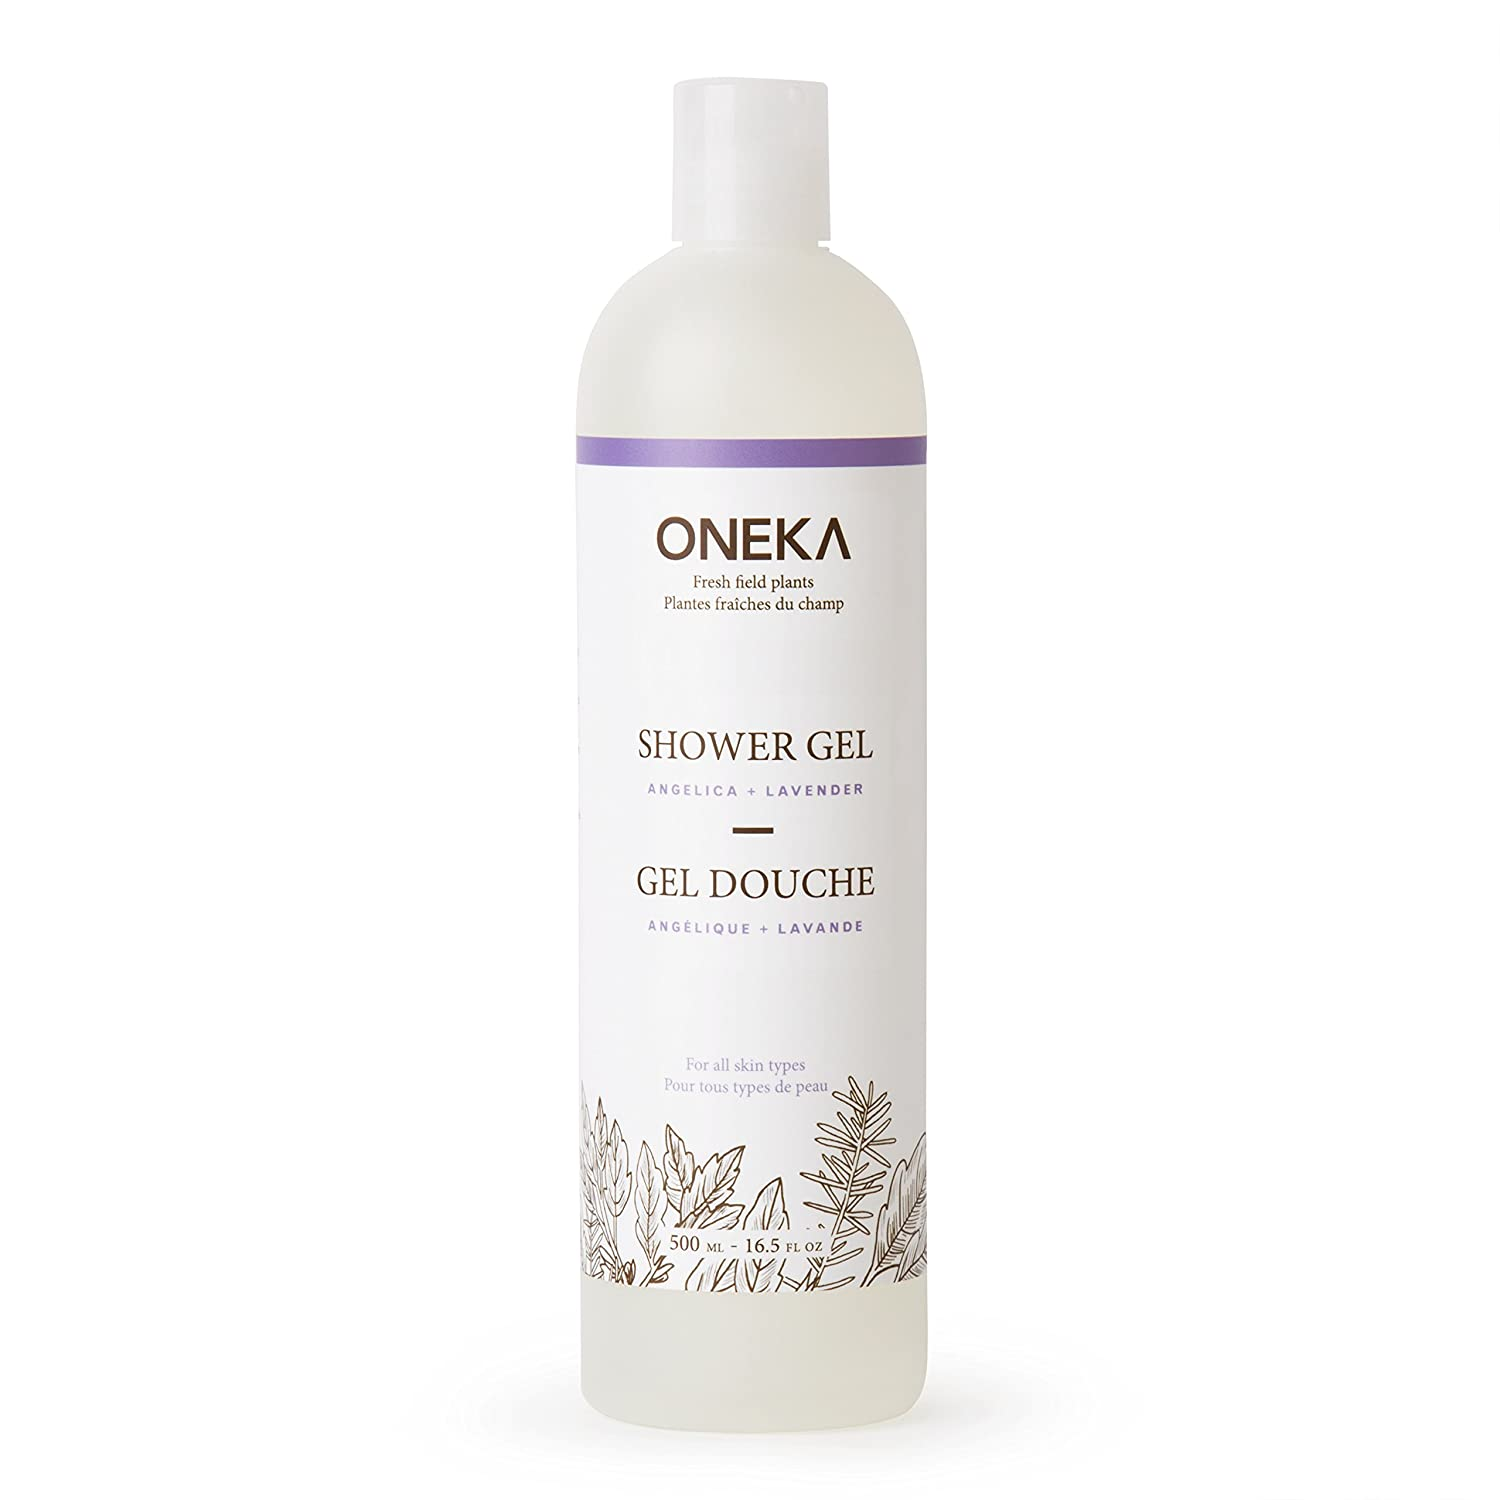 Oneka Angelica Plus Lavender Shower Gel, 16.5 fl. Oz. QECJU